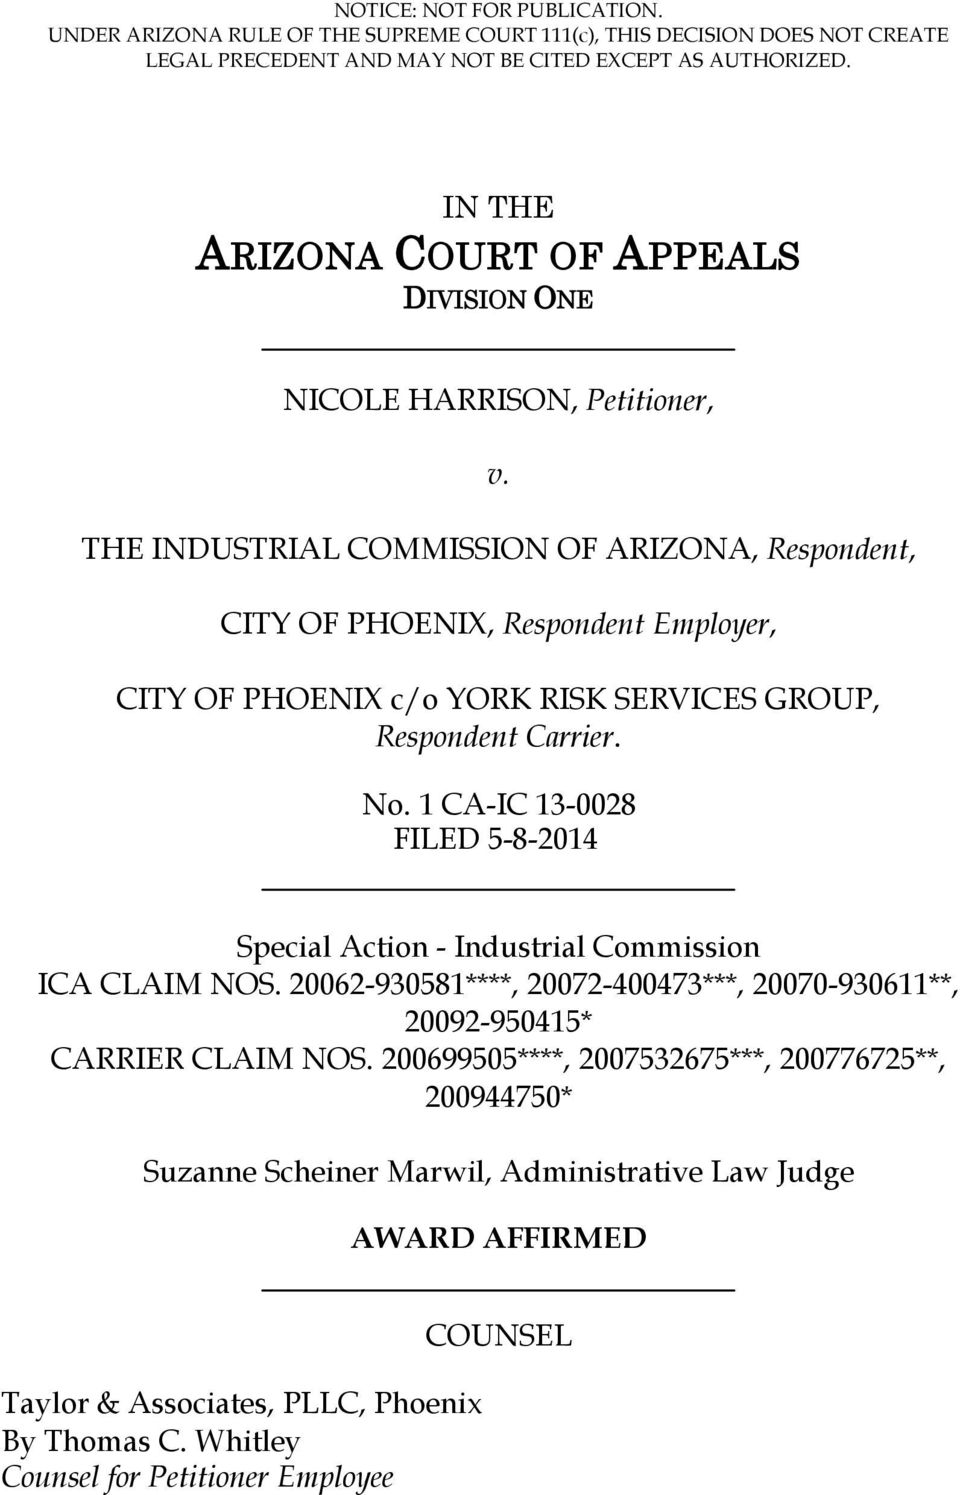 THE INDUSTRIAL COMMISSION OF ARIZONA, Respondent, CITY OF PHOENIX, Respondent Employer, CITY OF PHOENIX c/o YORK RISK SERVICES GROUP, Respondent Carrier. No.